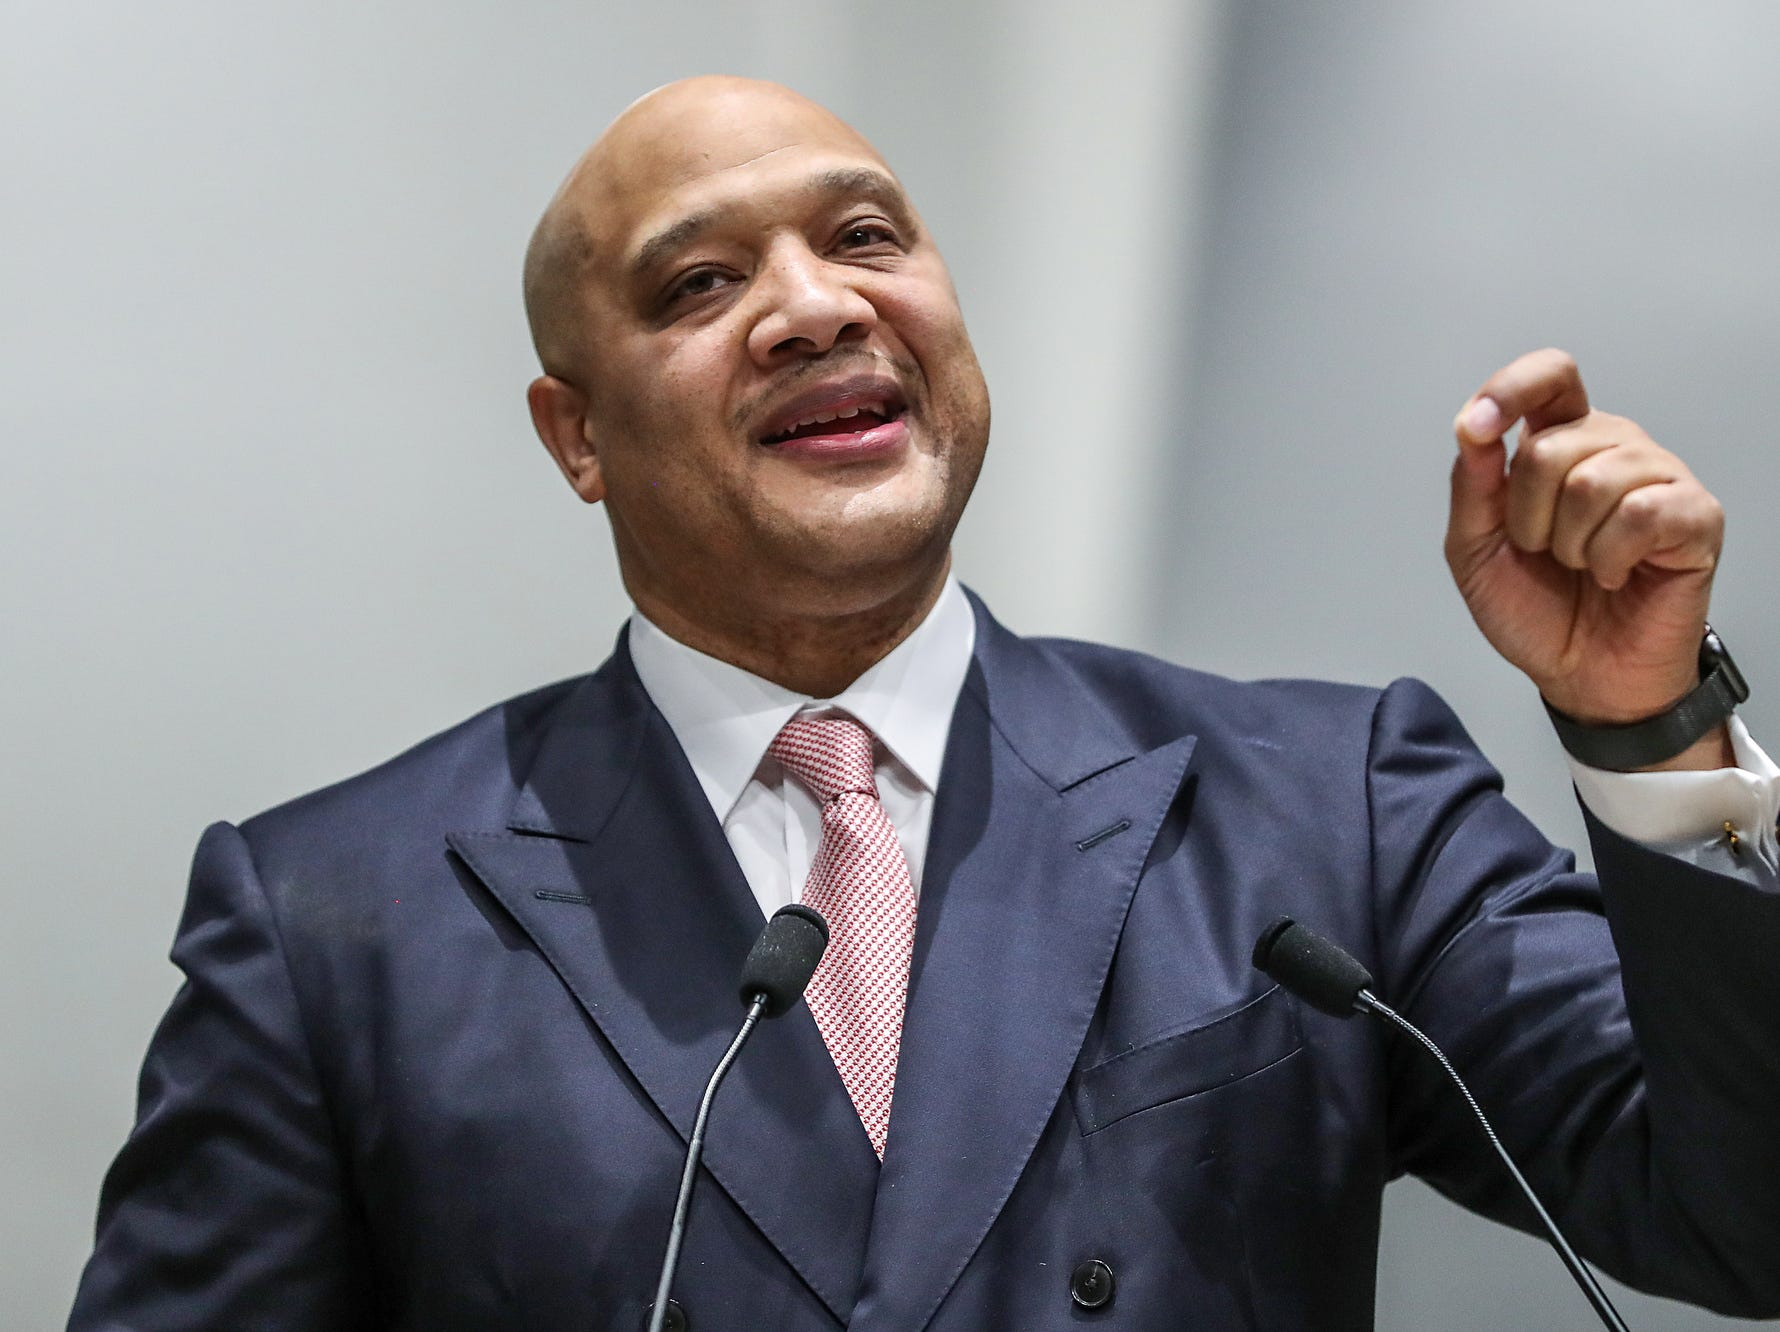 U.S. Rep. Andre Carson delivers remarks on the state of the nation during a service celebrating the anniversary of the Emancipation Proclamation and honoring local leaders, at Olivet Missionary Baptist Church in Indianapolis, Tuesday, Jan. 1, 2019.